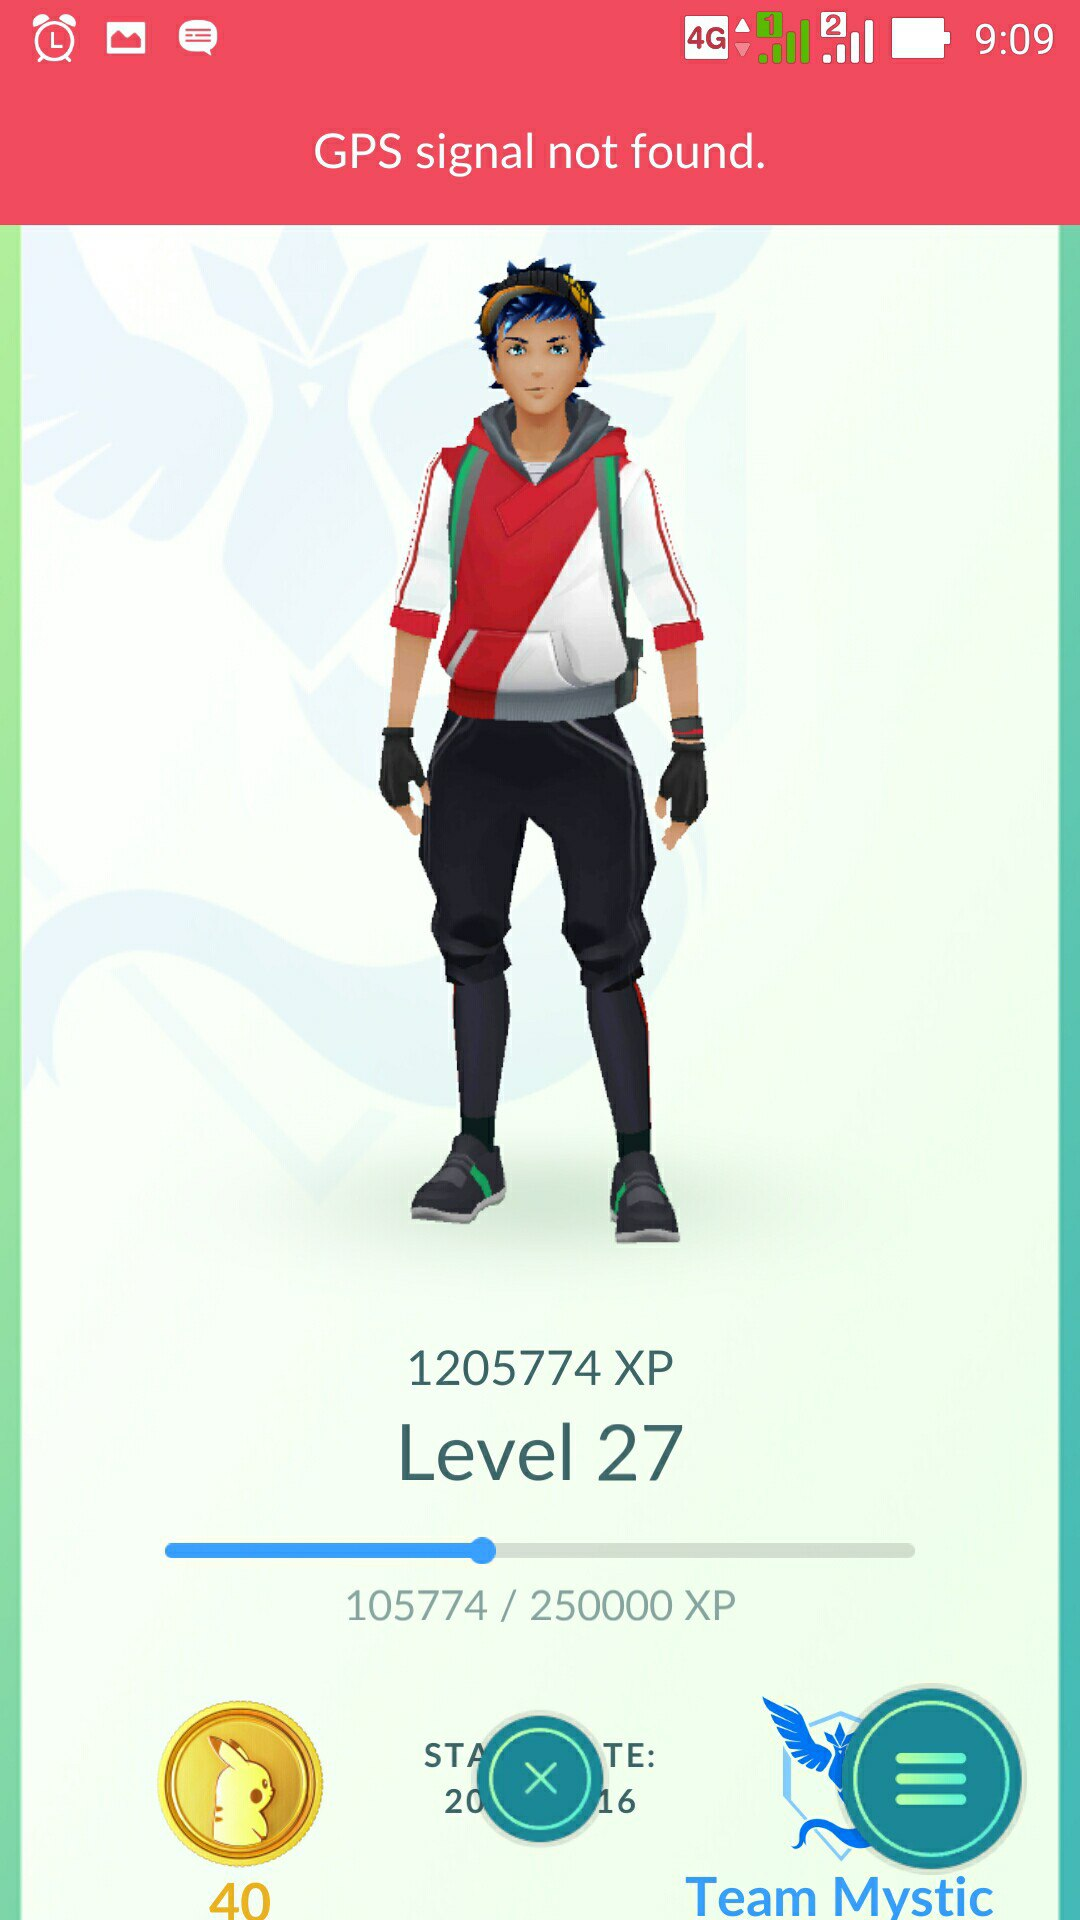 accounts PokemonGO from 24lvl to 27lvl